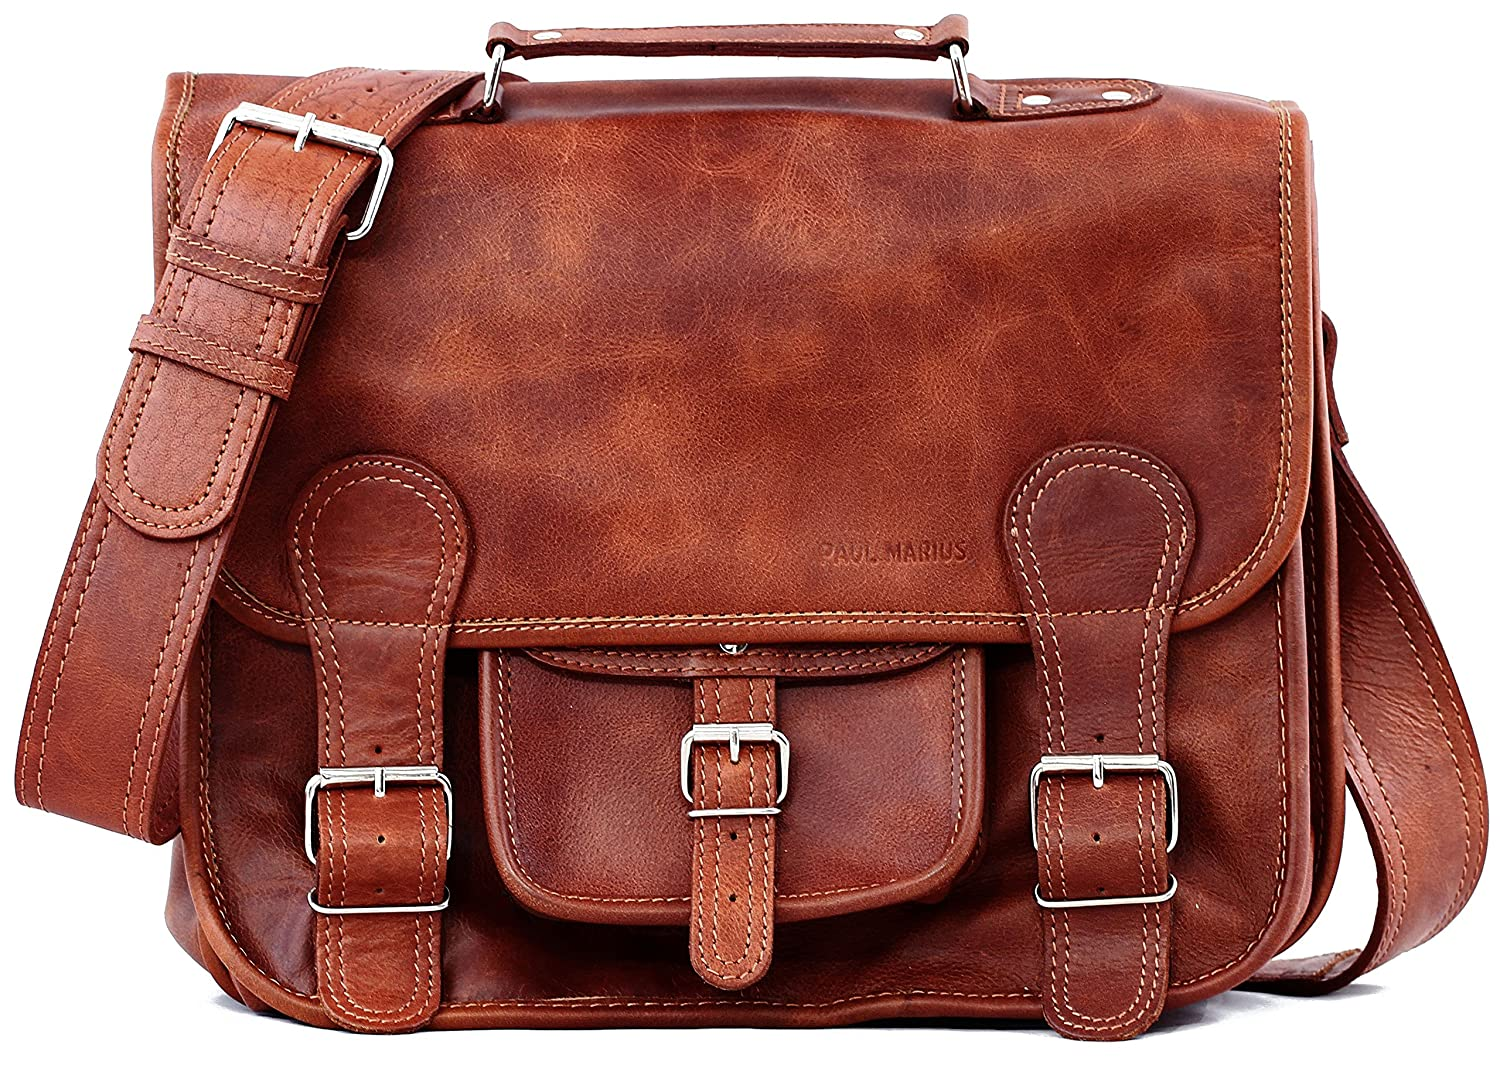 Paul Marius Cartable Cuir Vintage - Retro Sac cuir bandoulière signé Collection La Cartable